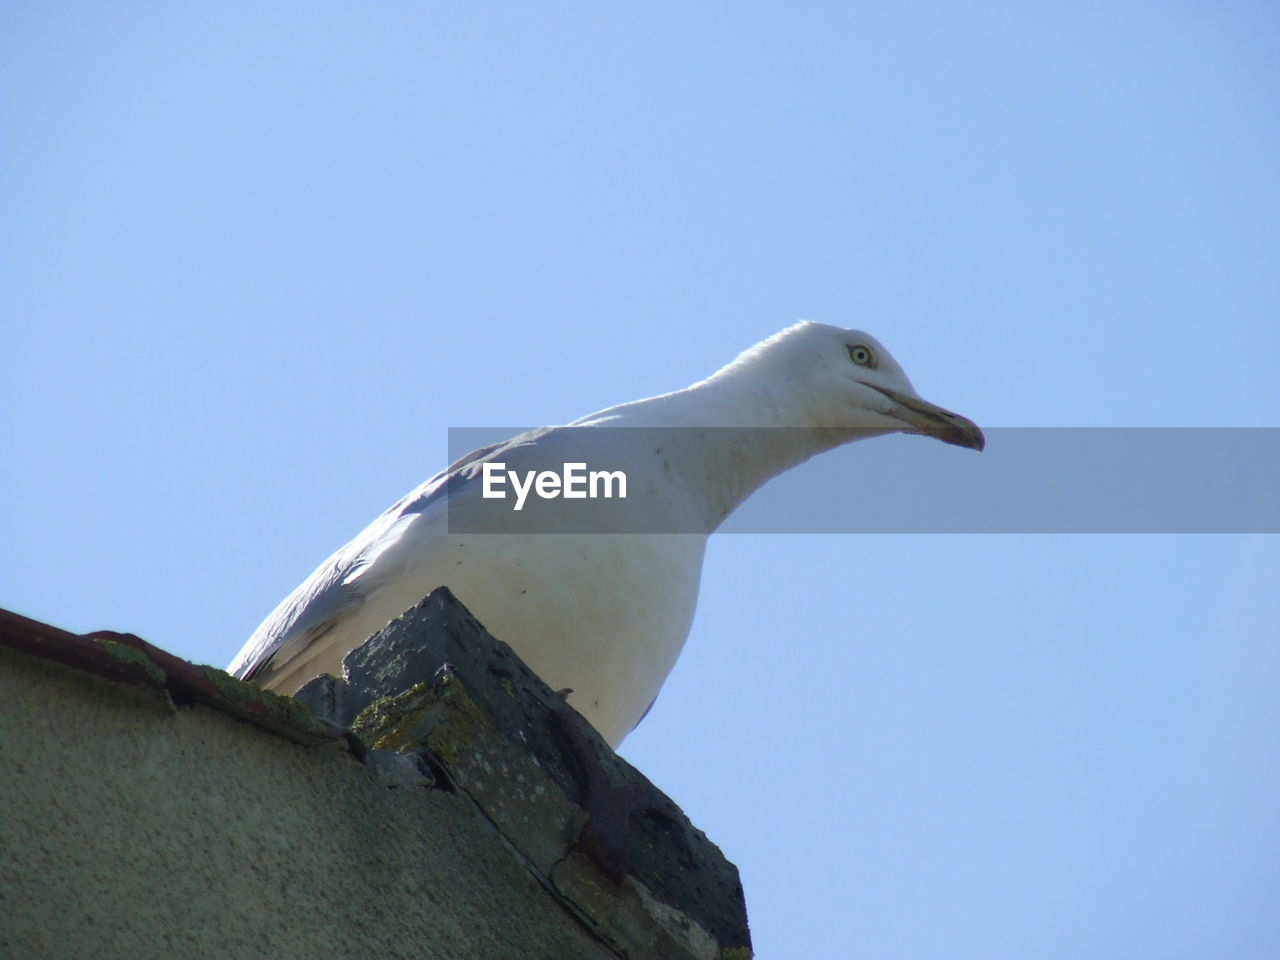 sky, clear sky, low angle view, copy space, blue, no people, bird, nature, one animal, animal wildlife, animal themes, animals in the wild, animal, vertebrate, day, architecture, sunlight, white color, seagull, outdoors, profile view